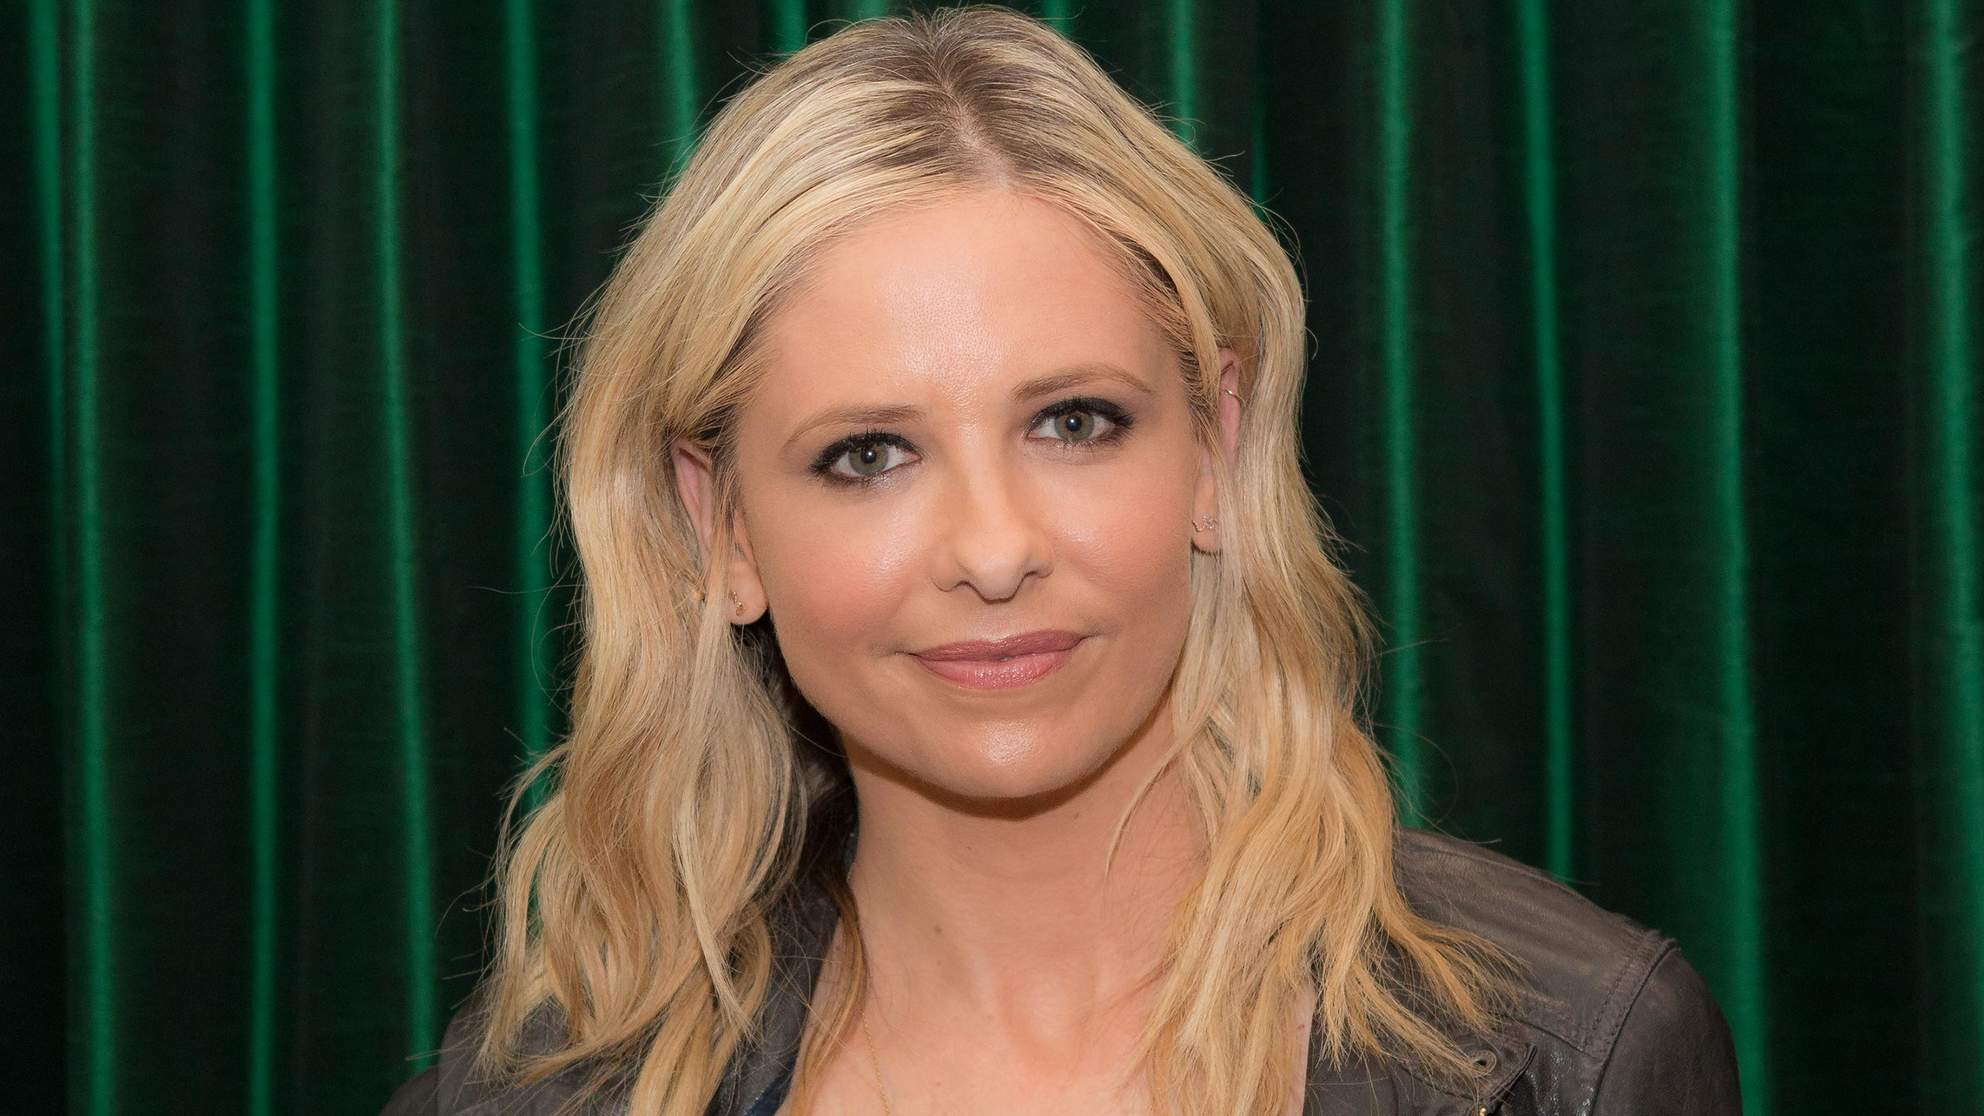 Sarah Michelle Gellar Reveals Postpartum Depression Struggle in Health Care Plea